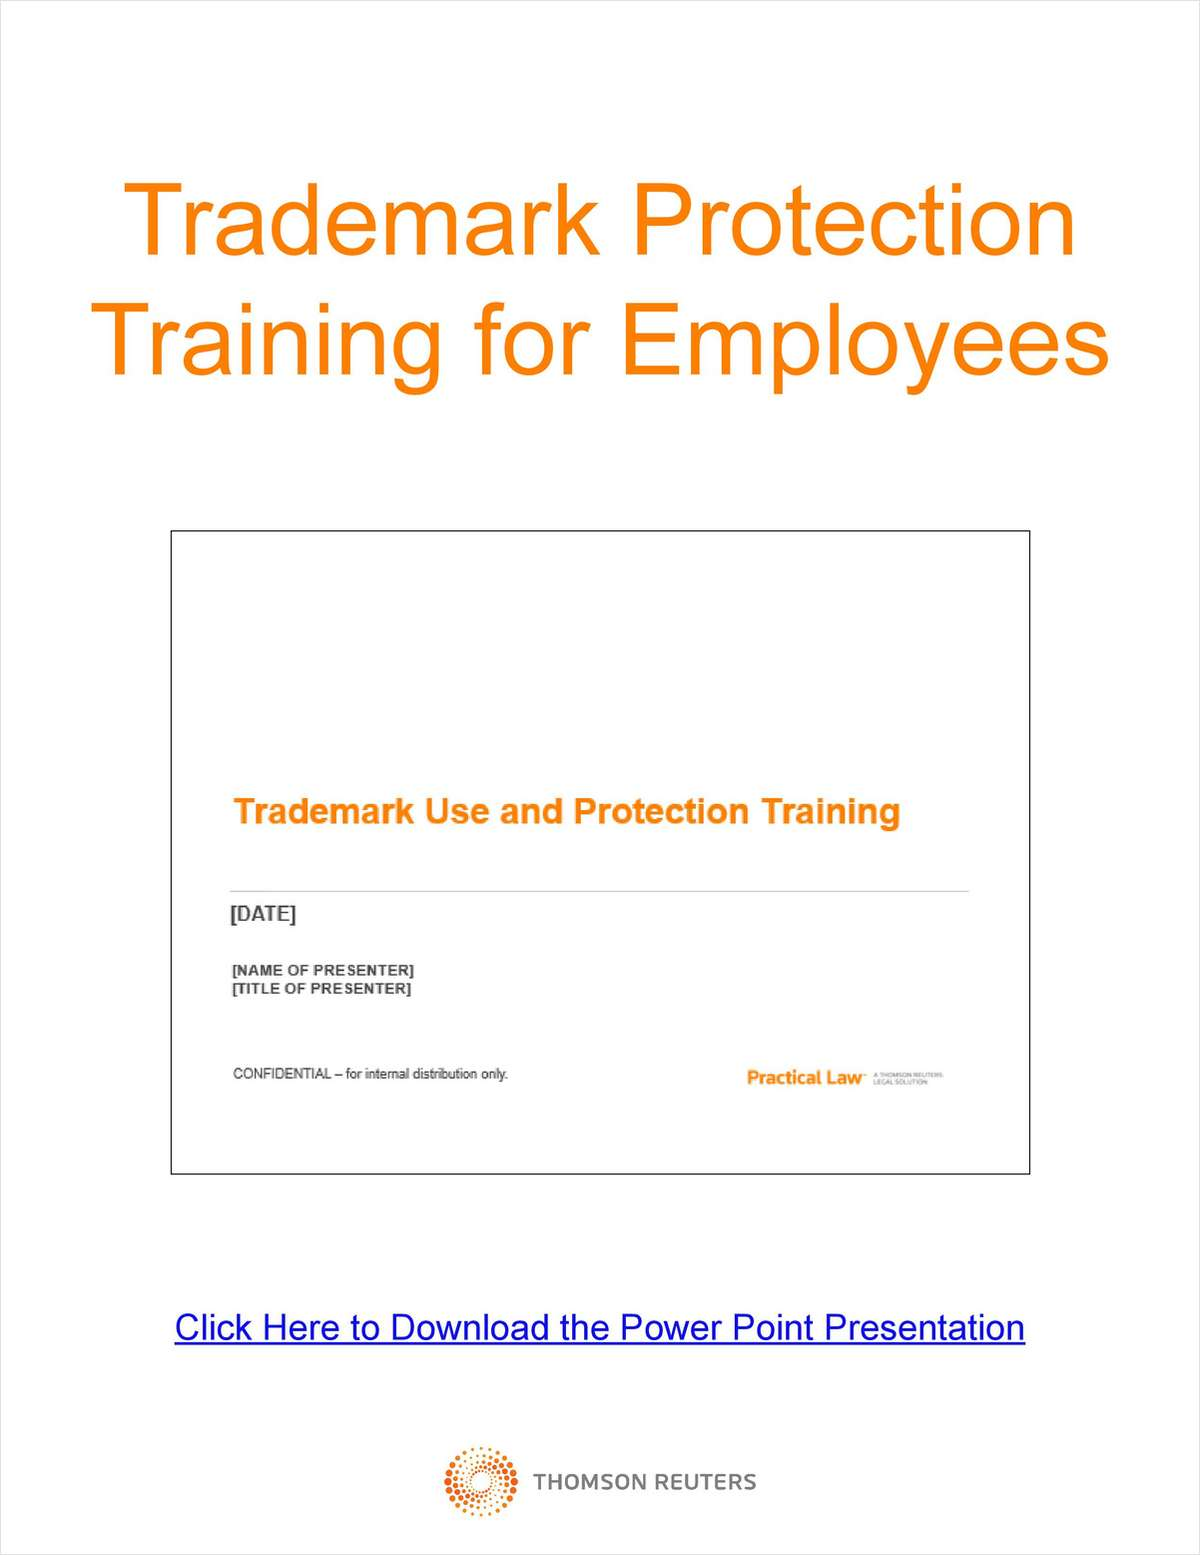 How to Train Your Employees to Protect Your Company Trademarks